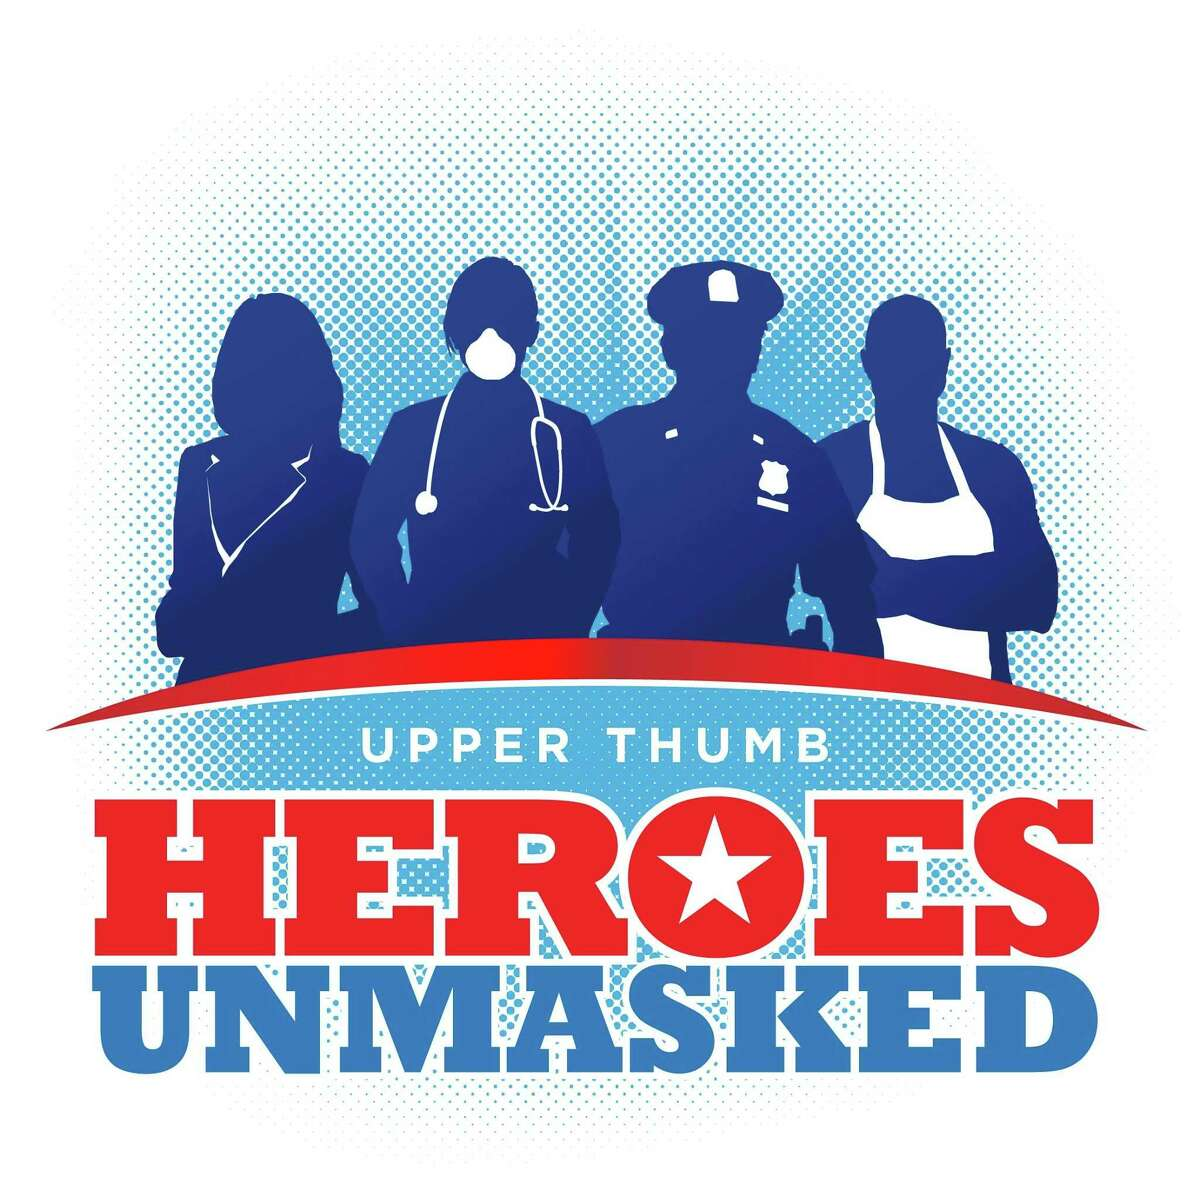 LOOKING FOR HEROES Do you know someone who's been a community hero during the coronavirus pandemic? TheTribune wants to shine a light on everyday people doing great things during this crisis.If you know someone, send a note toeric.young@hearstnp.comor scott.nunn@hearstnp.com to say who they are and what they have been doing.